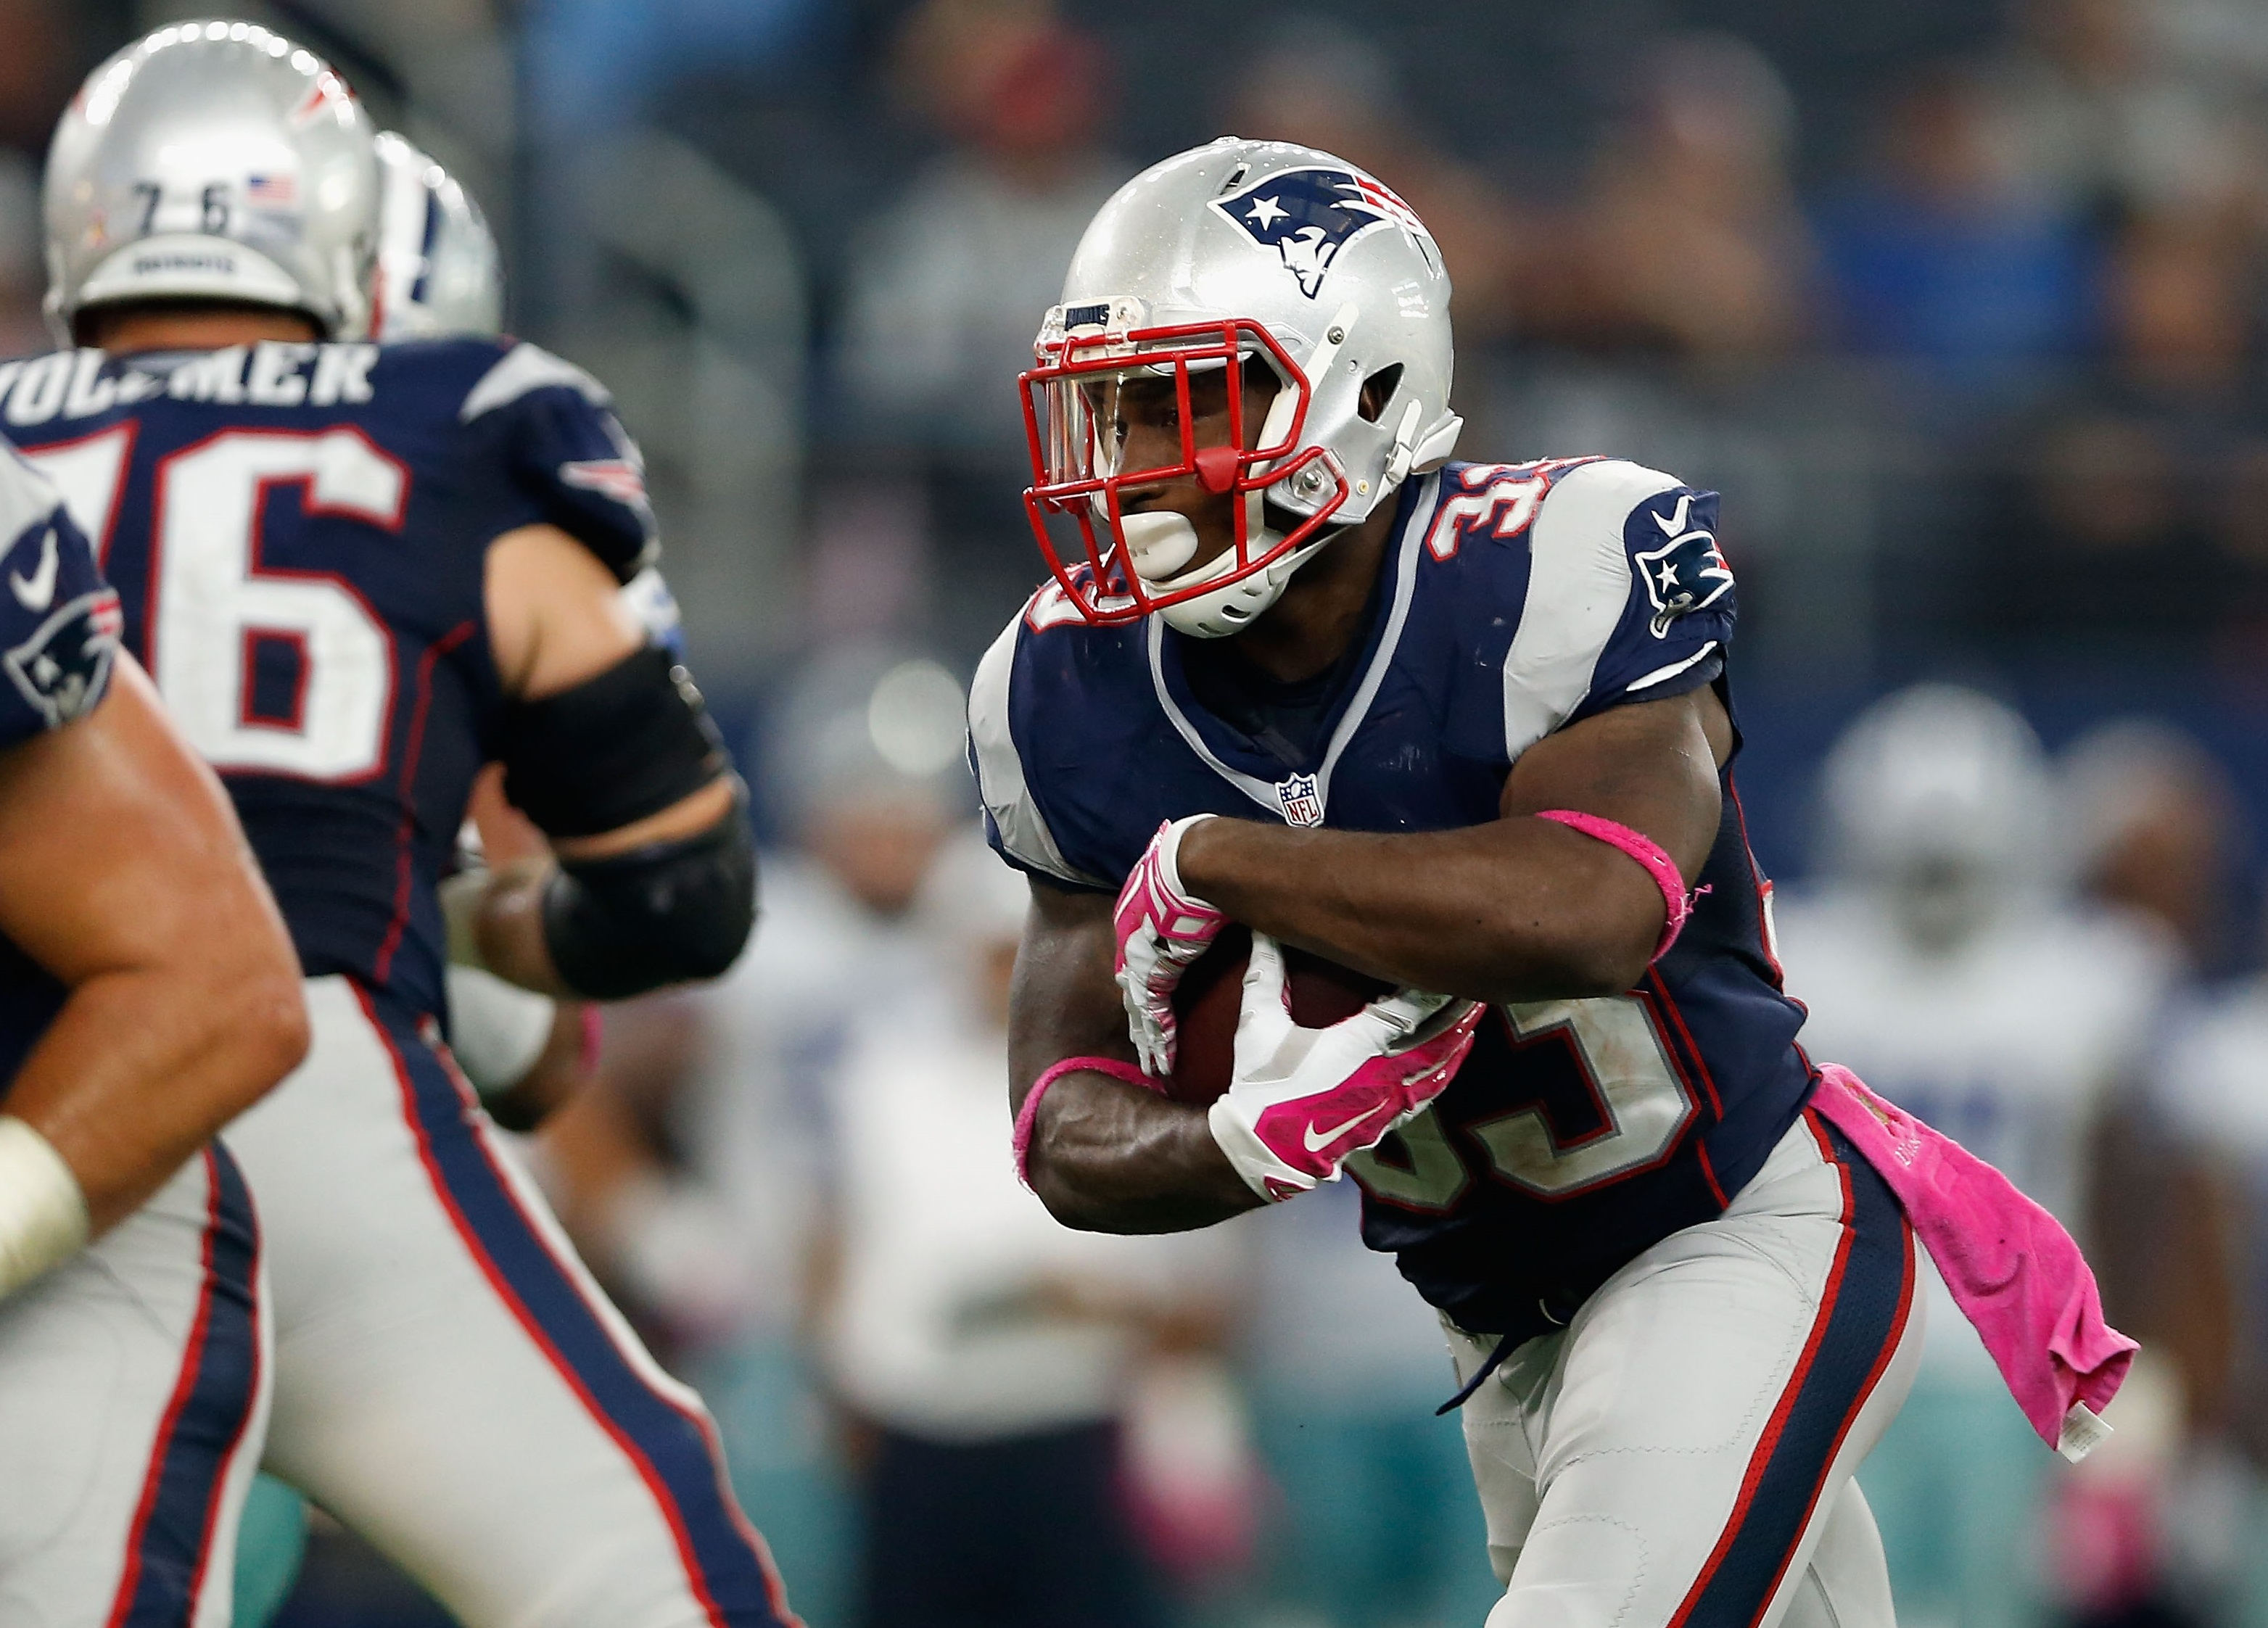 Fantasy Football DFS Sleepers for NFL Divisional Round